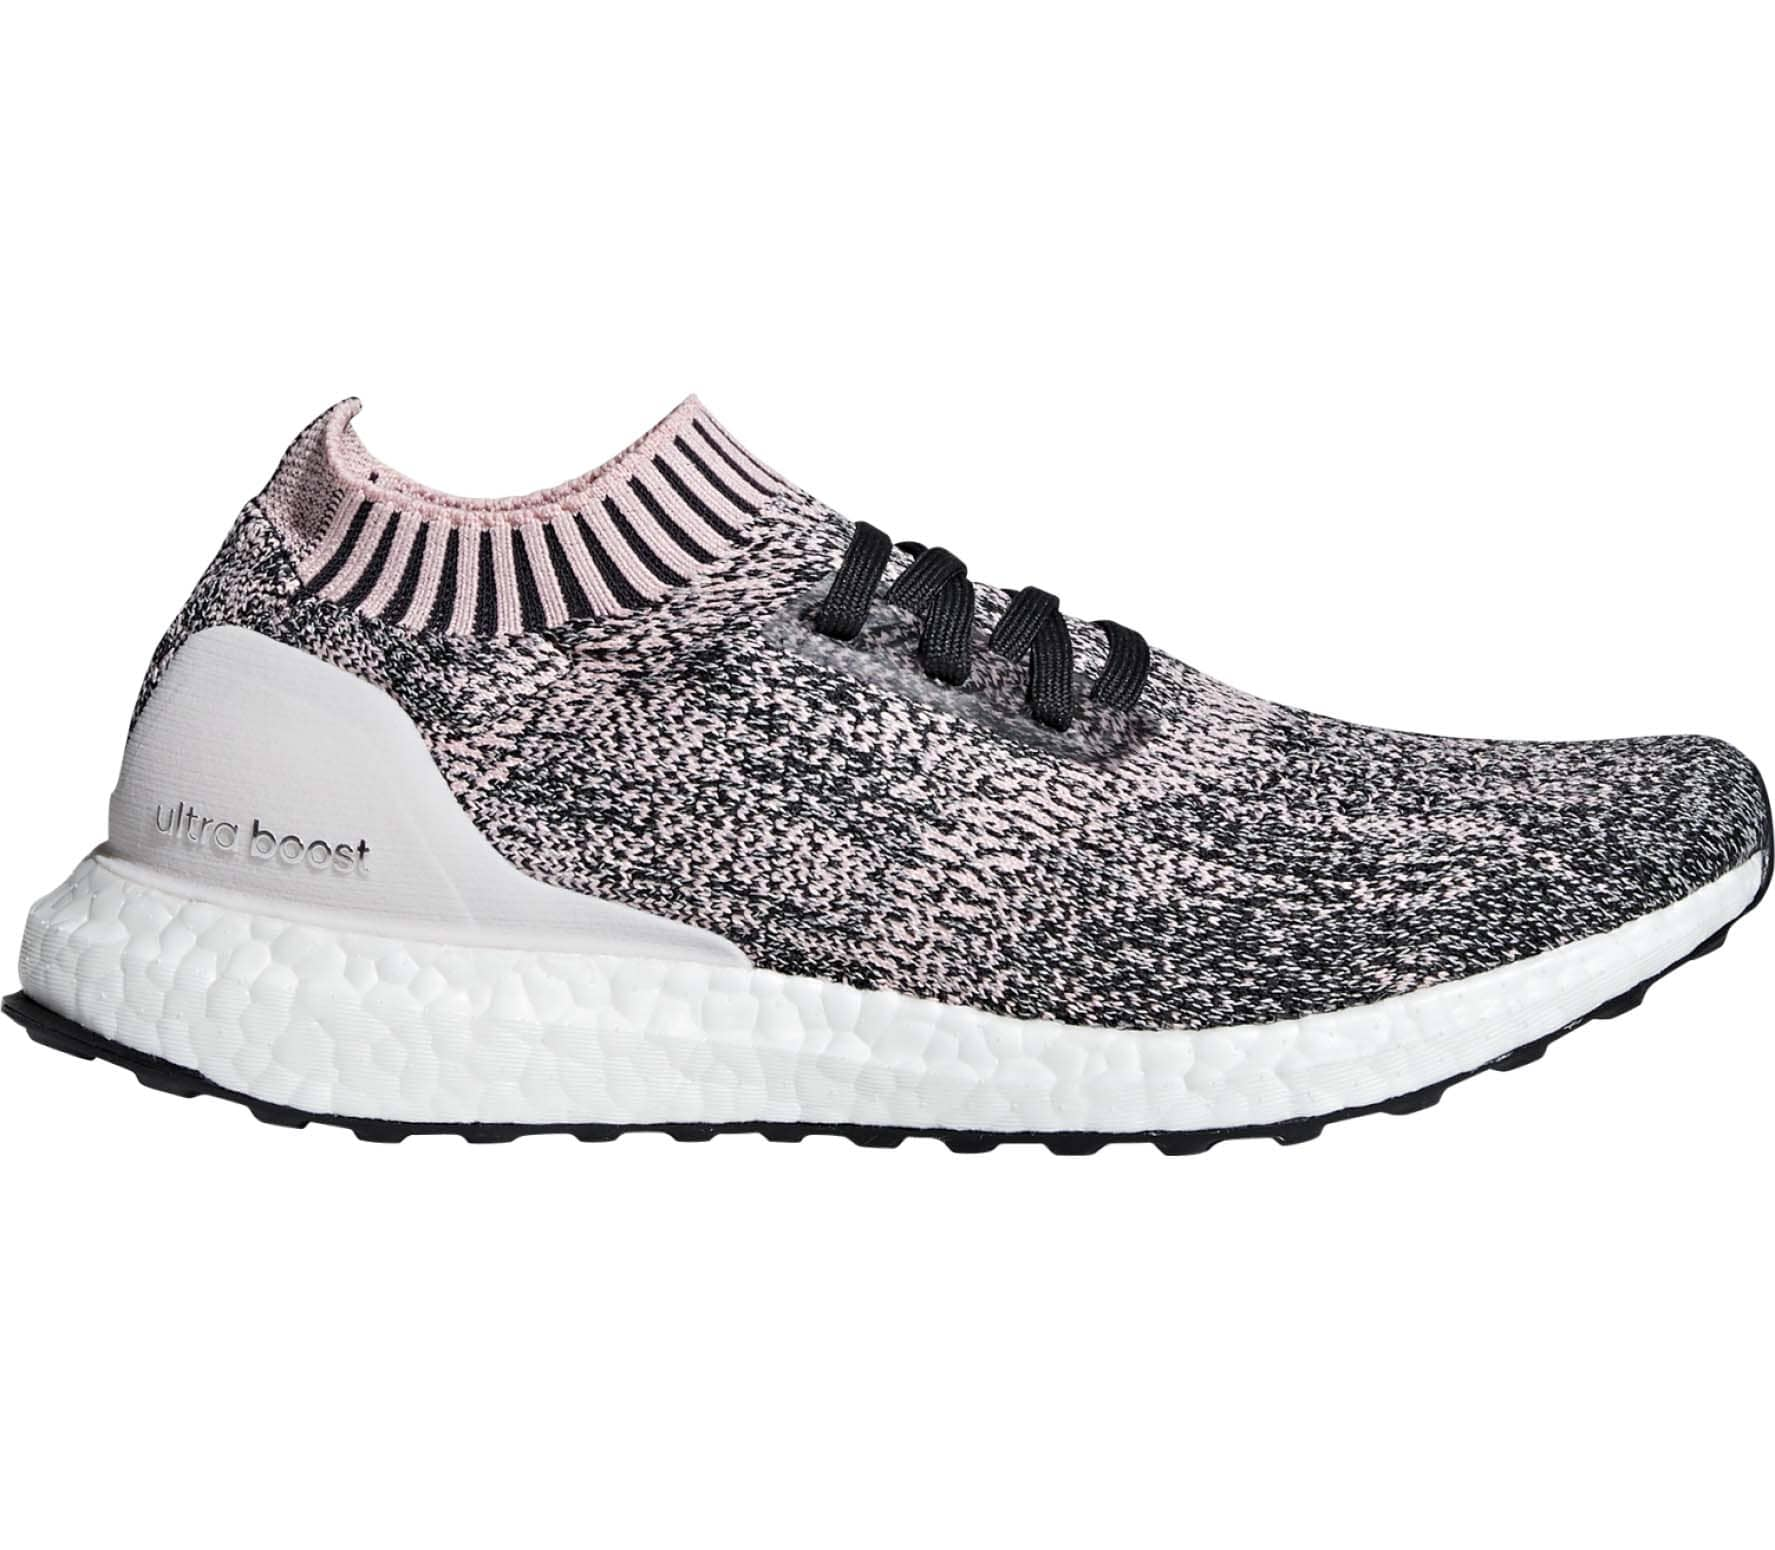 3ebbe5bf609ba adidas - Ultraboost Uncaged women s running shoes (pink black) - buy ...